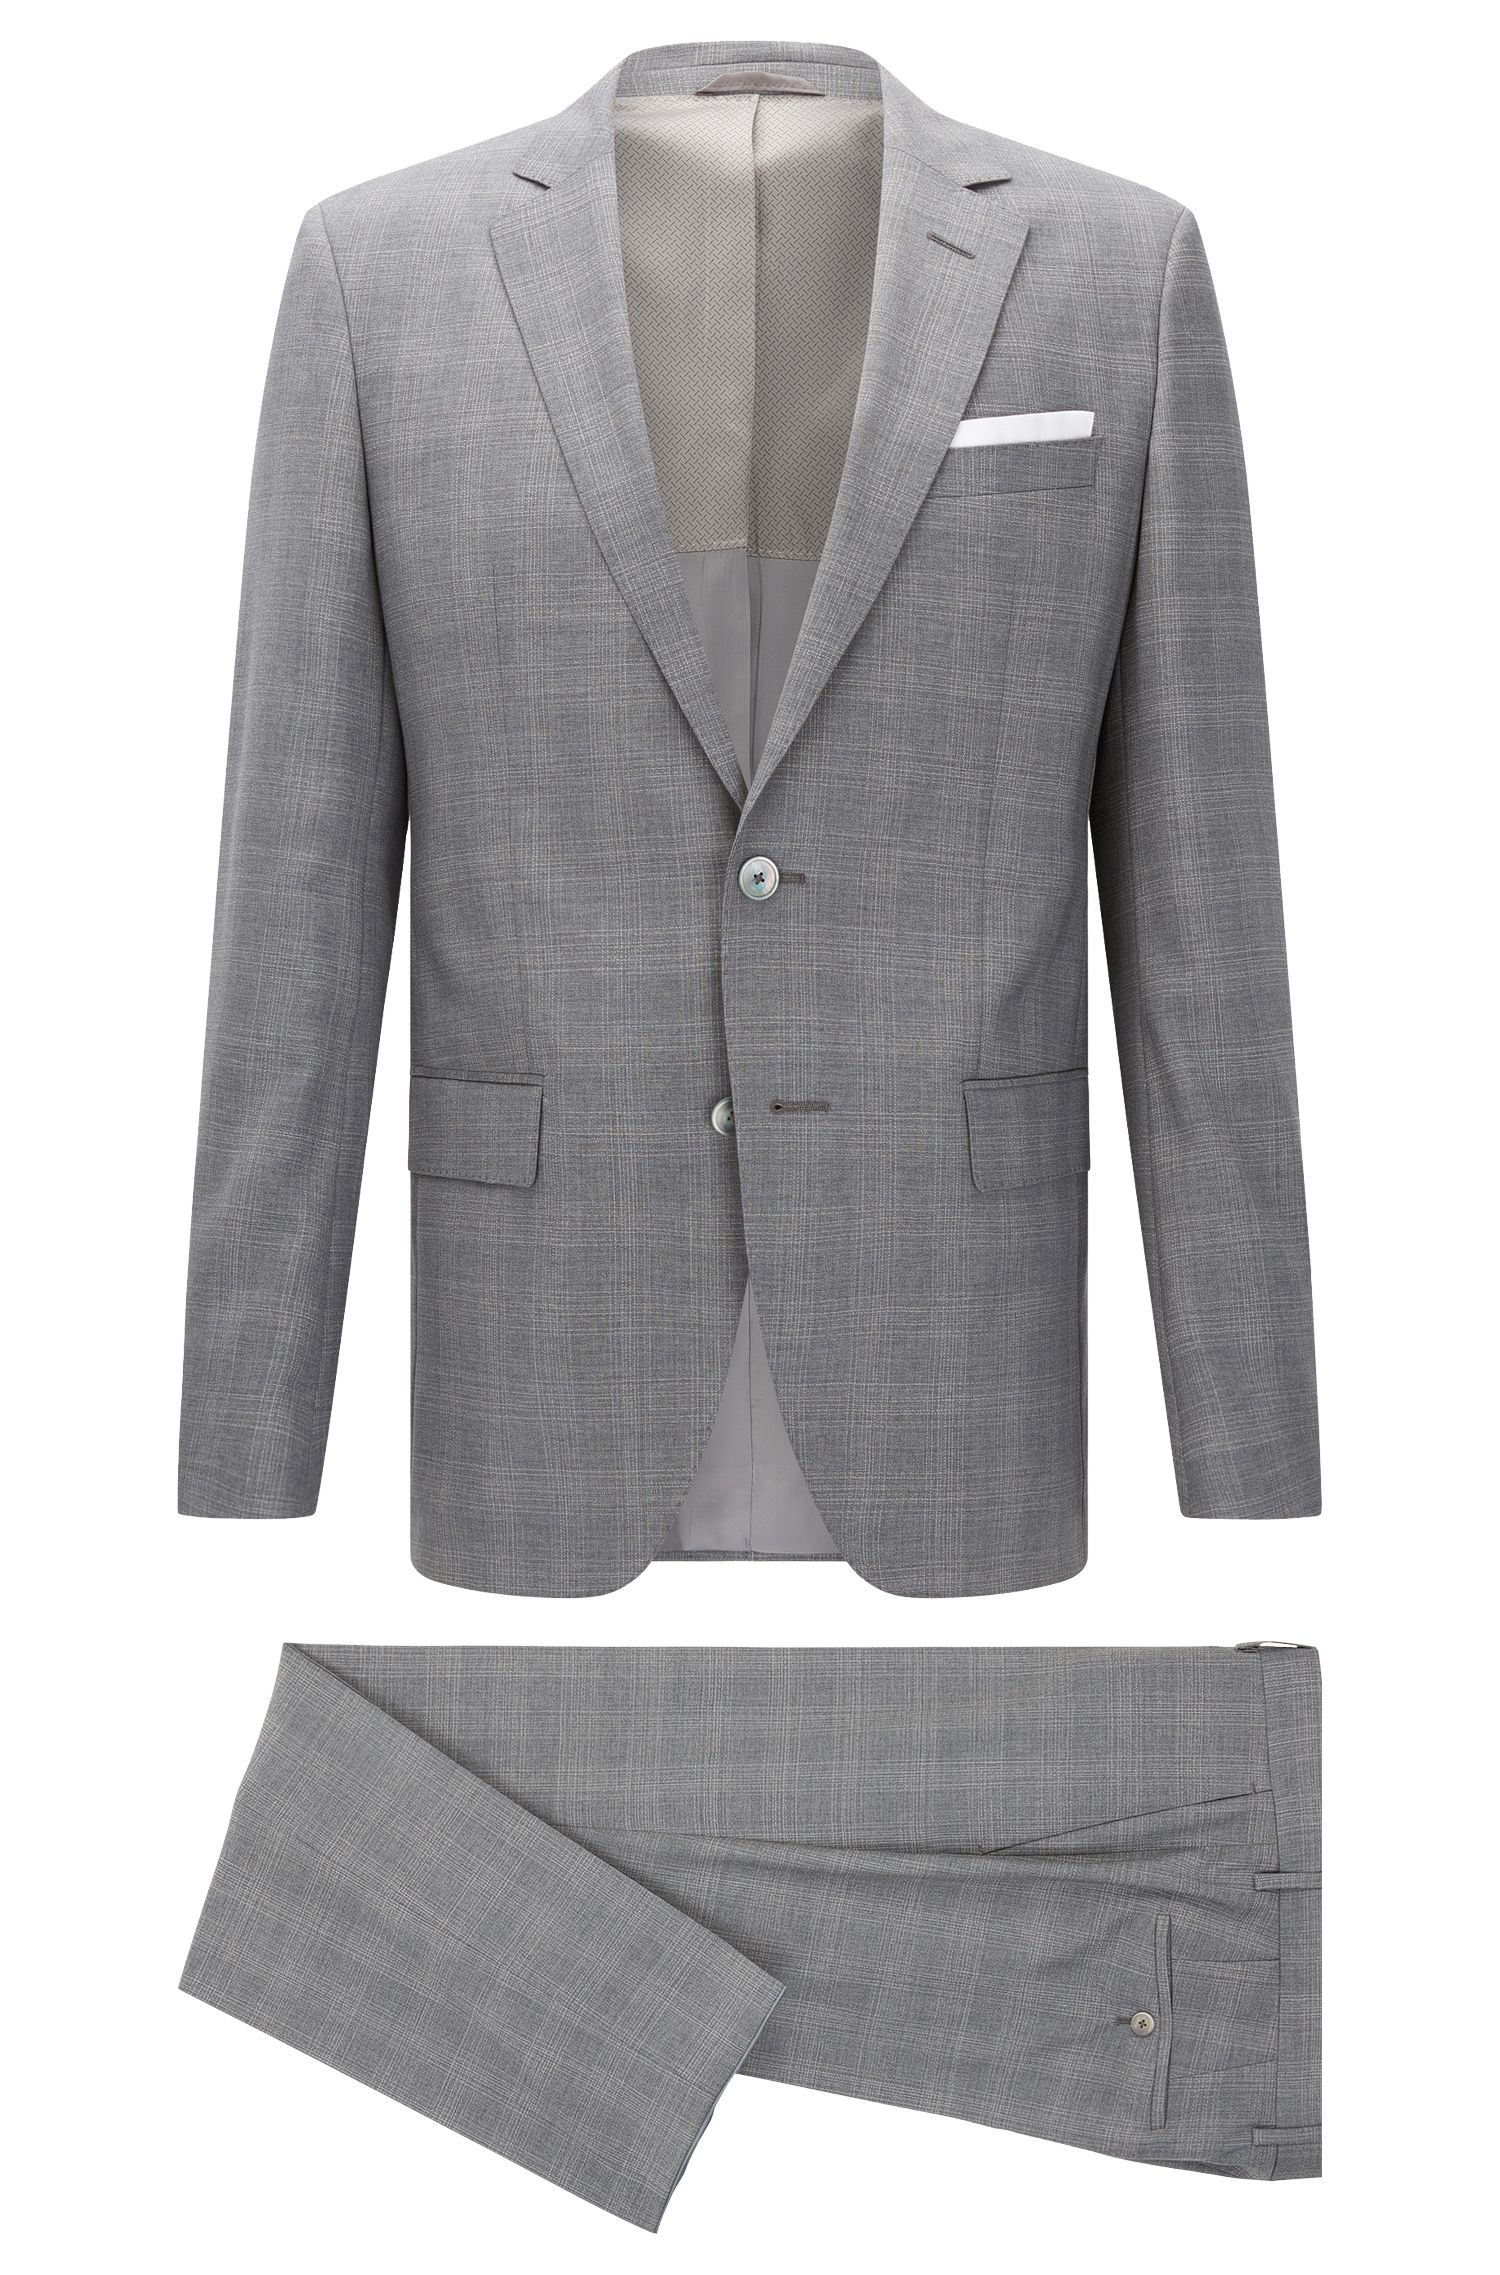 'Hutson/Gander' | Slim Fit, Italian Super 100 Virgin Wool Suit